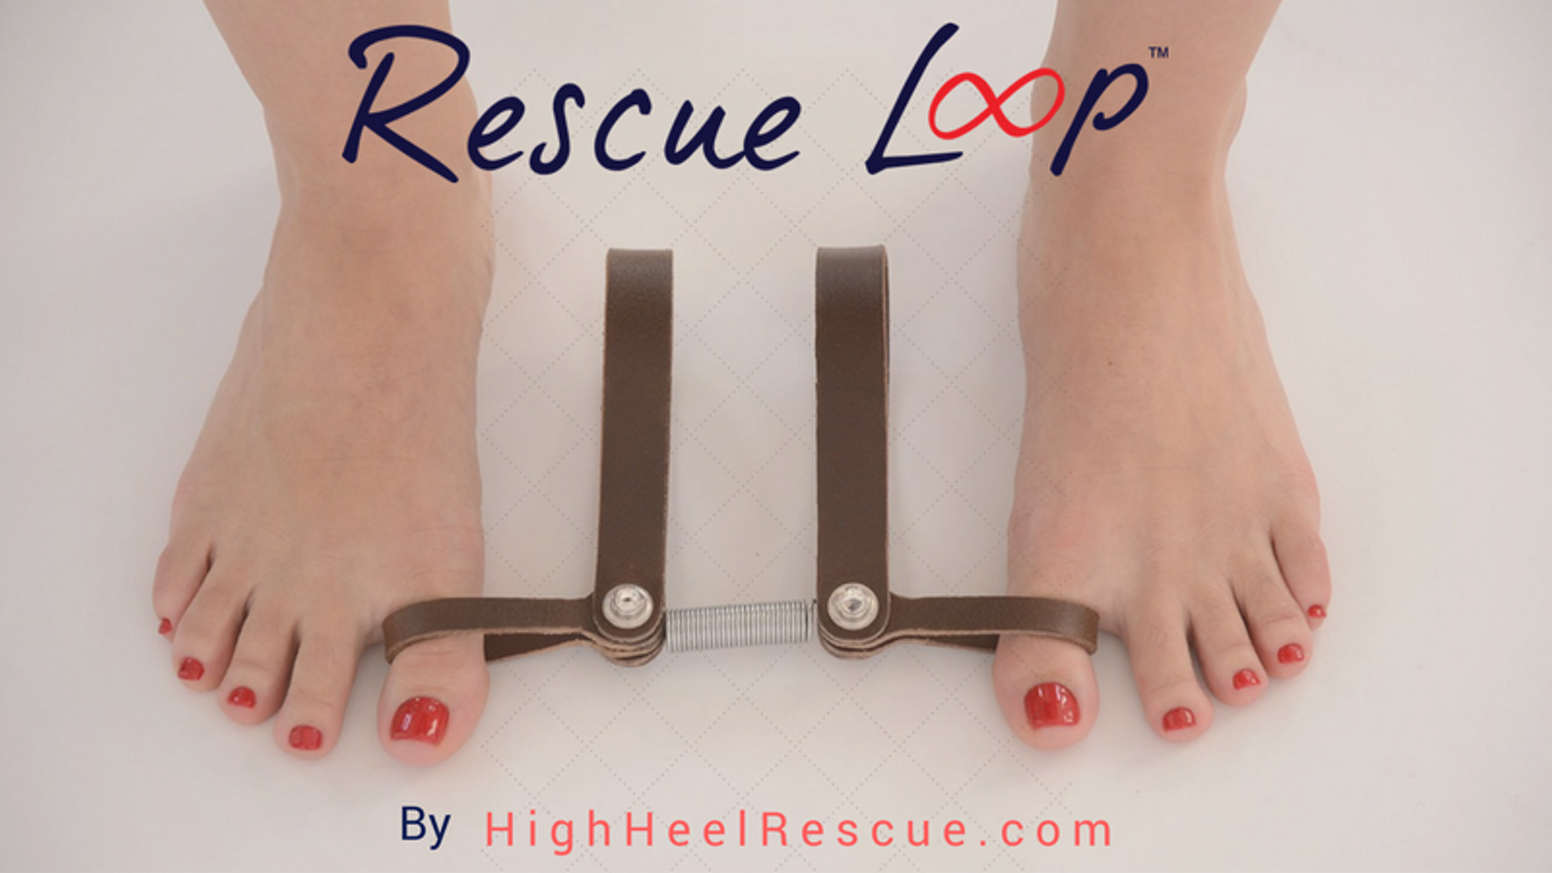 Give your feet a chance! Use Rescue LOOP for 20 minutes a week to reenergize your feet.